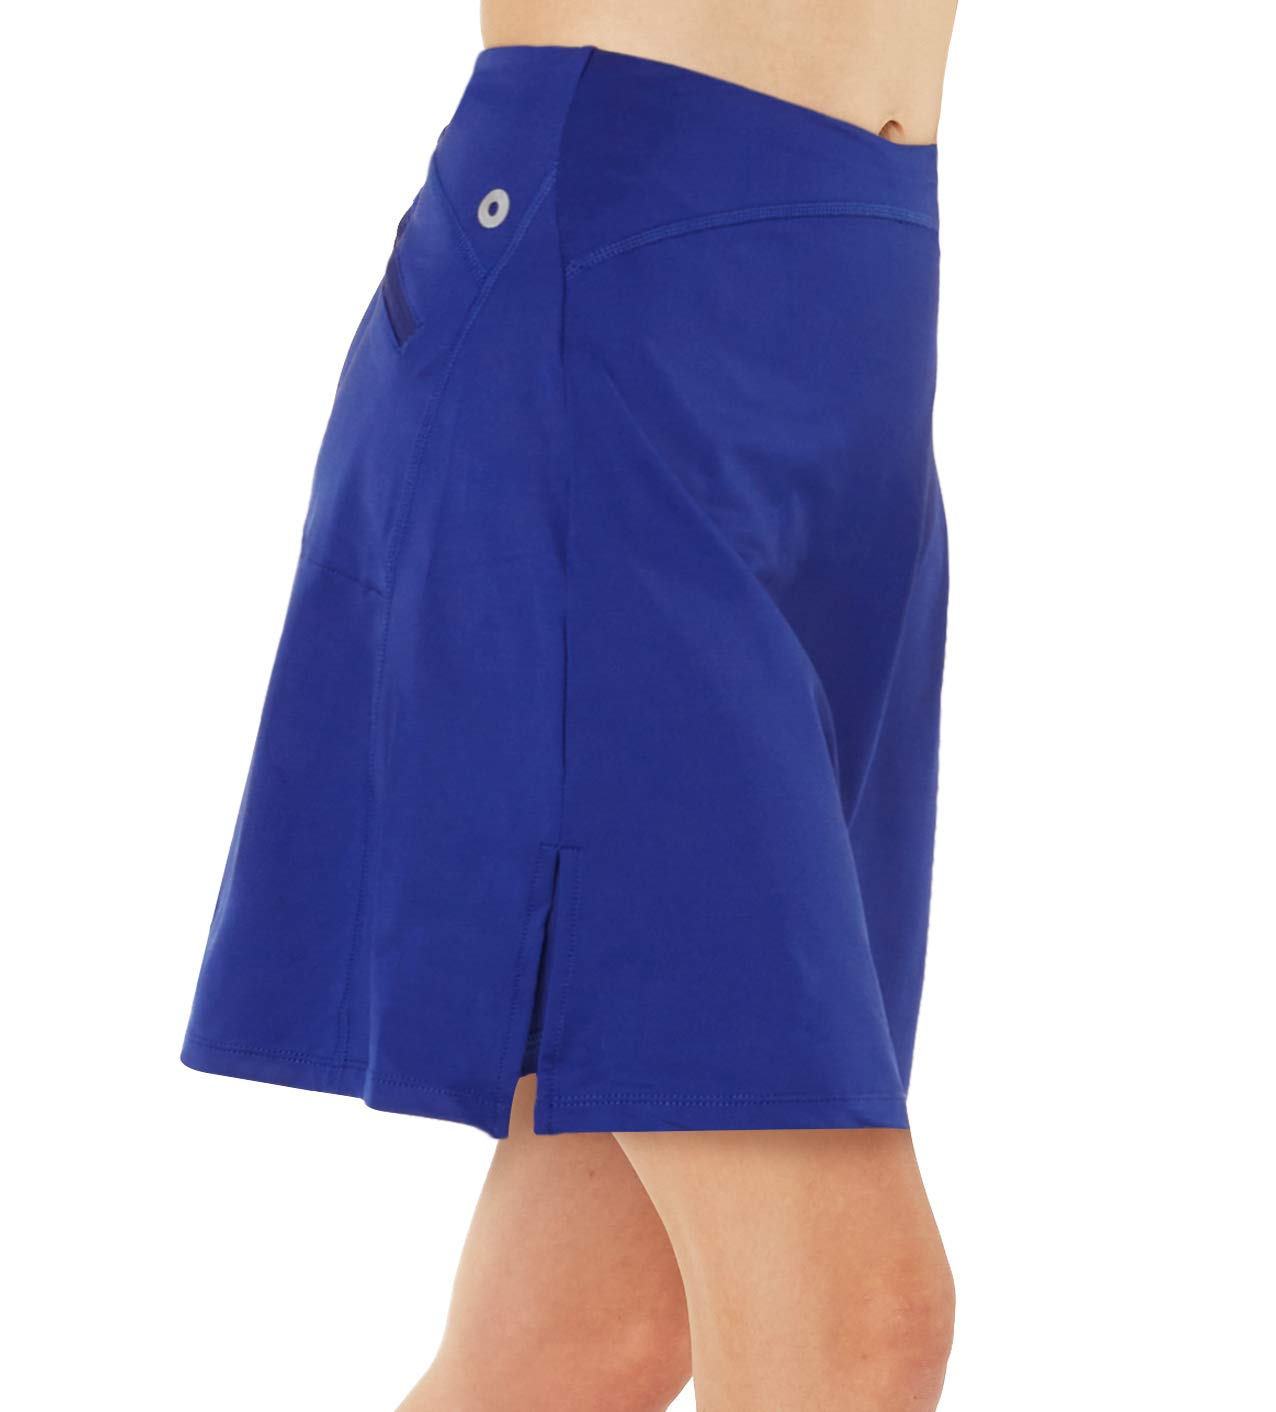 slimour Women Modest Running Skirt Travel Skirts with Pocket Swim Skirt High Waist with Shorts Blue L by slimour